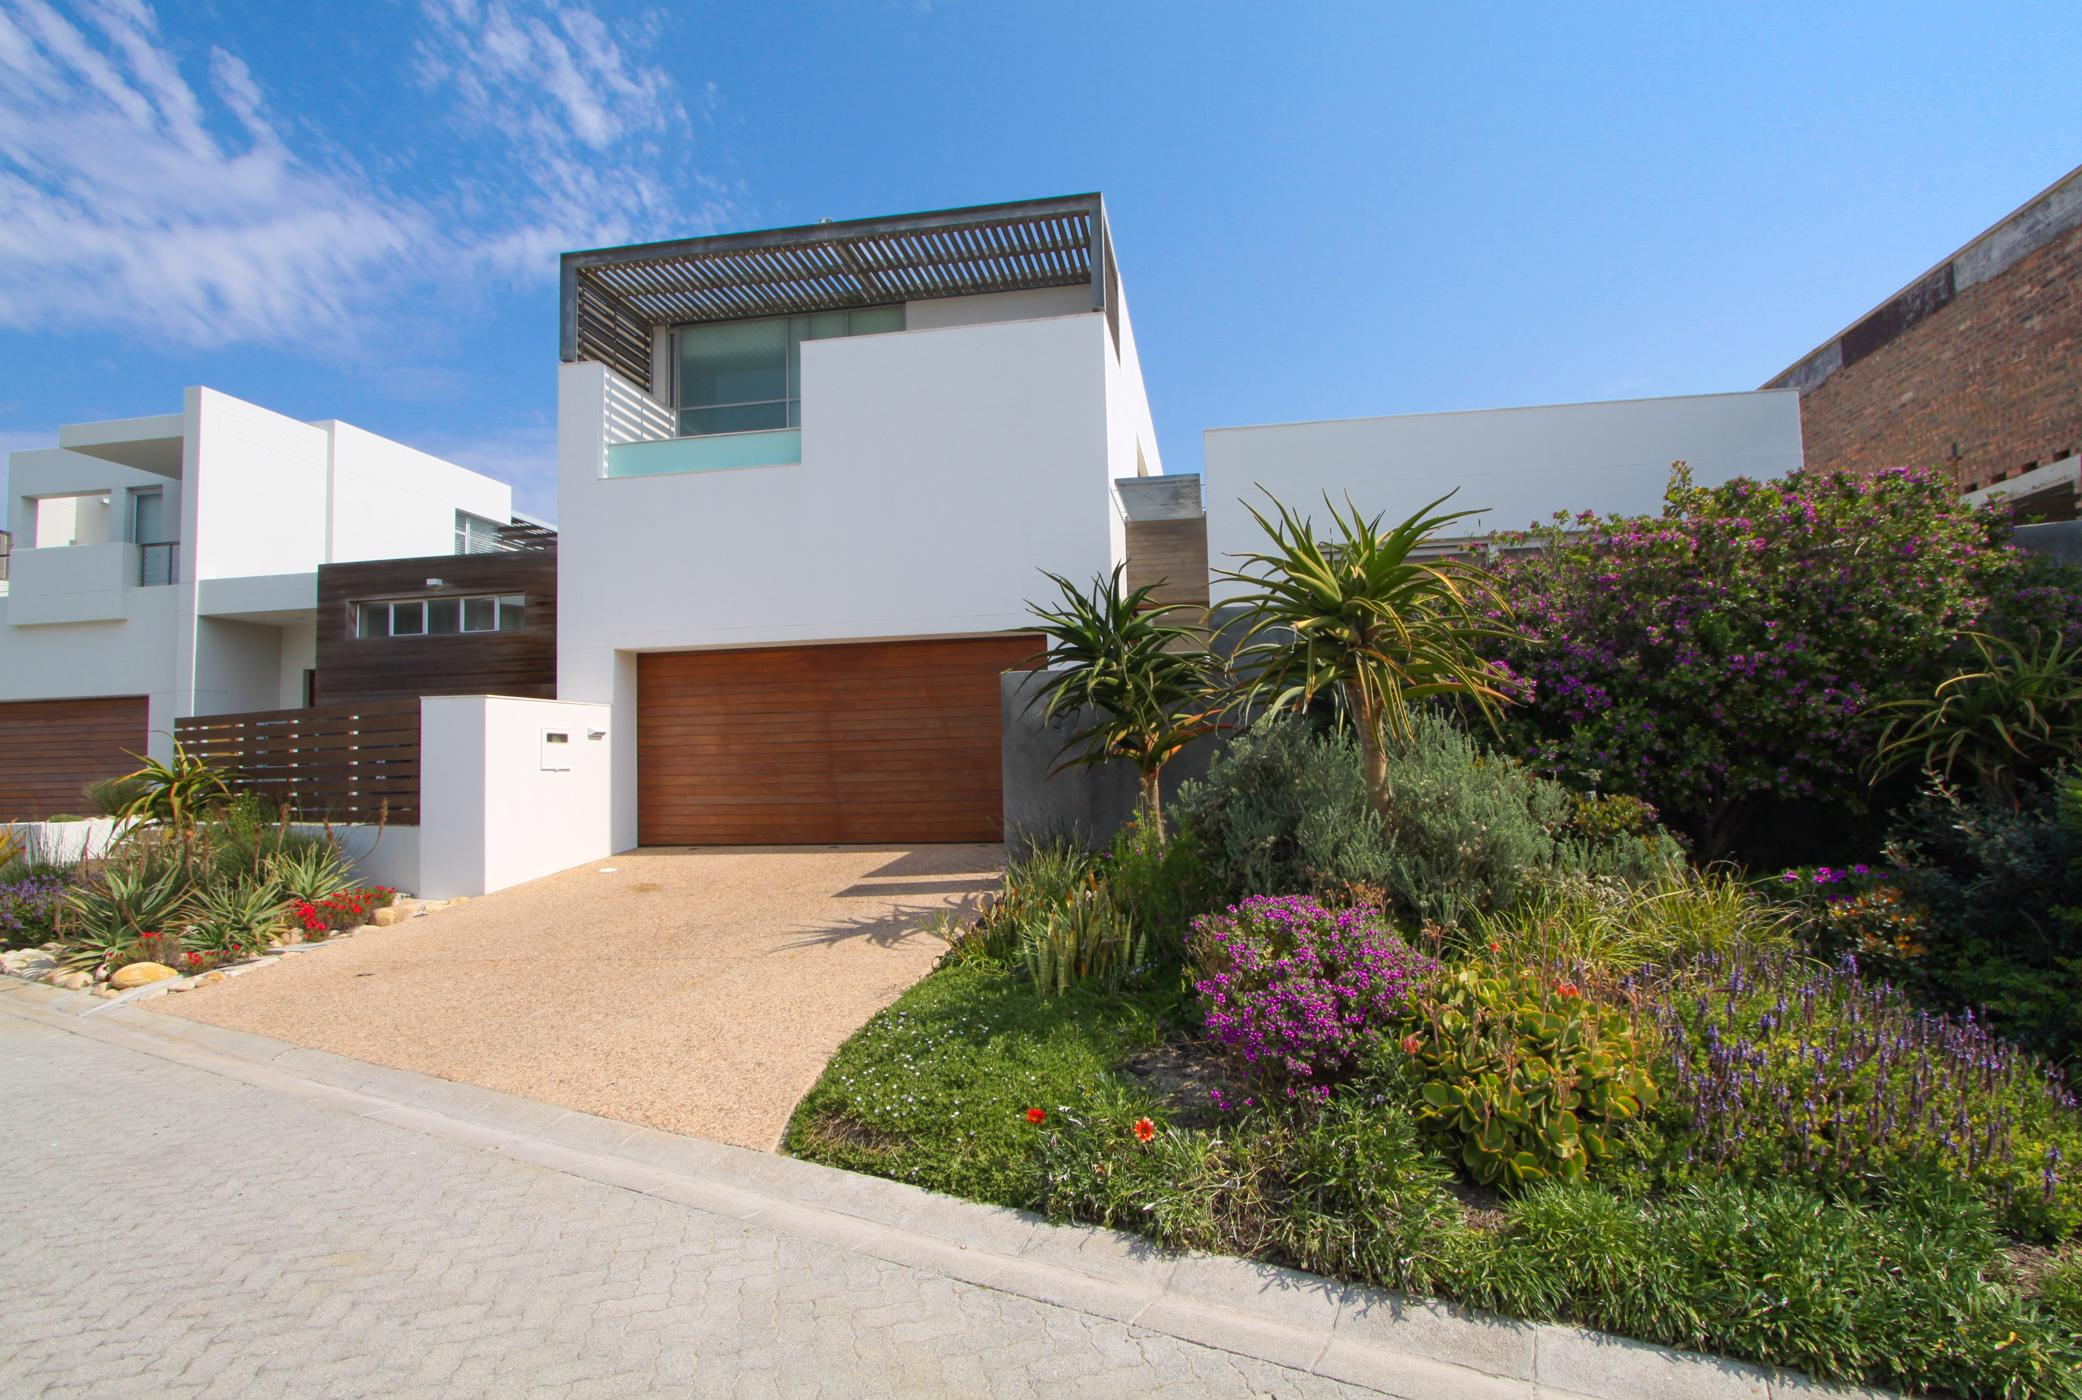 https://listing.pamgolding.co.za/images/properties/201910/1533344/H/1533344_H_1.jpg